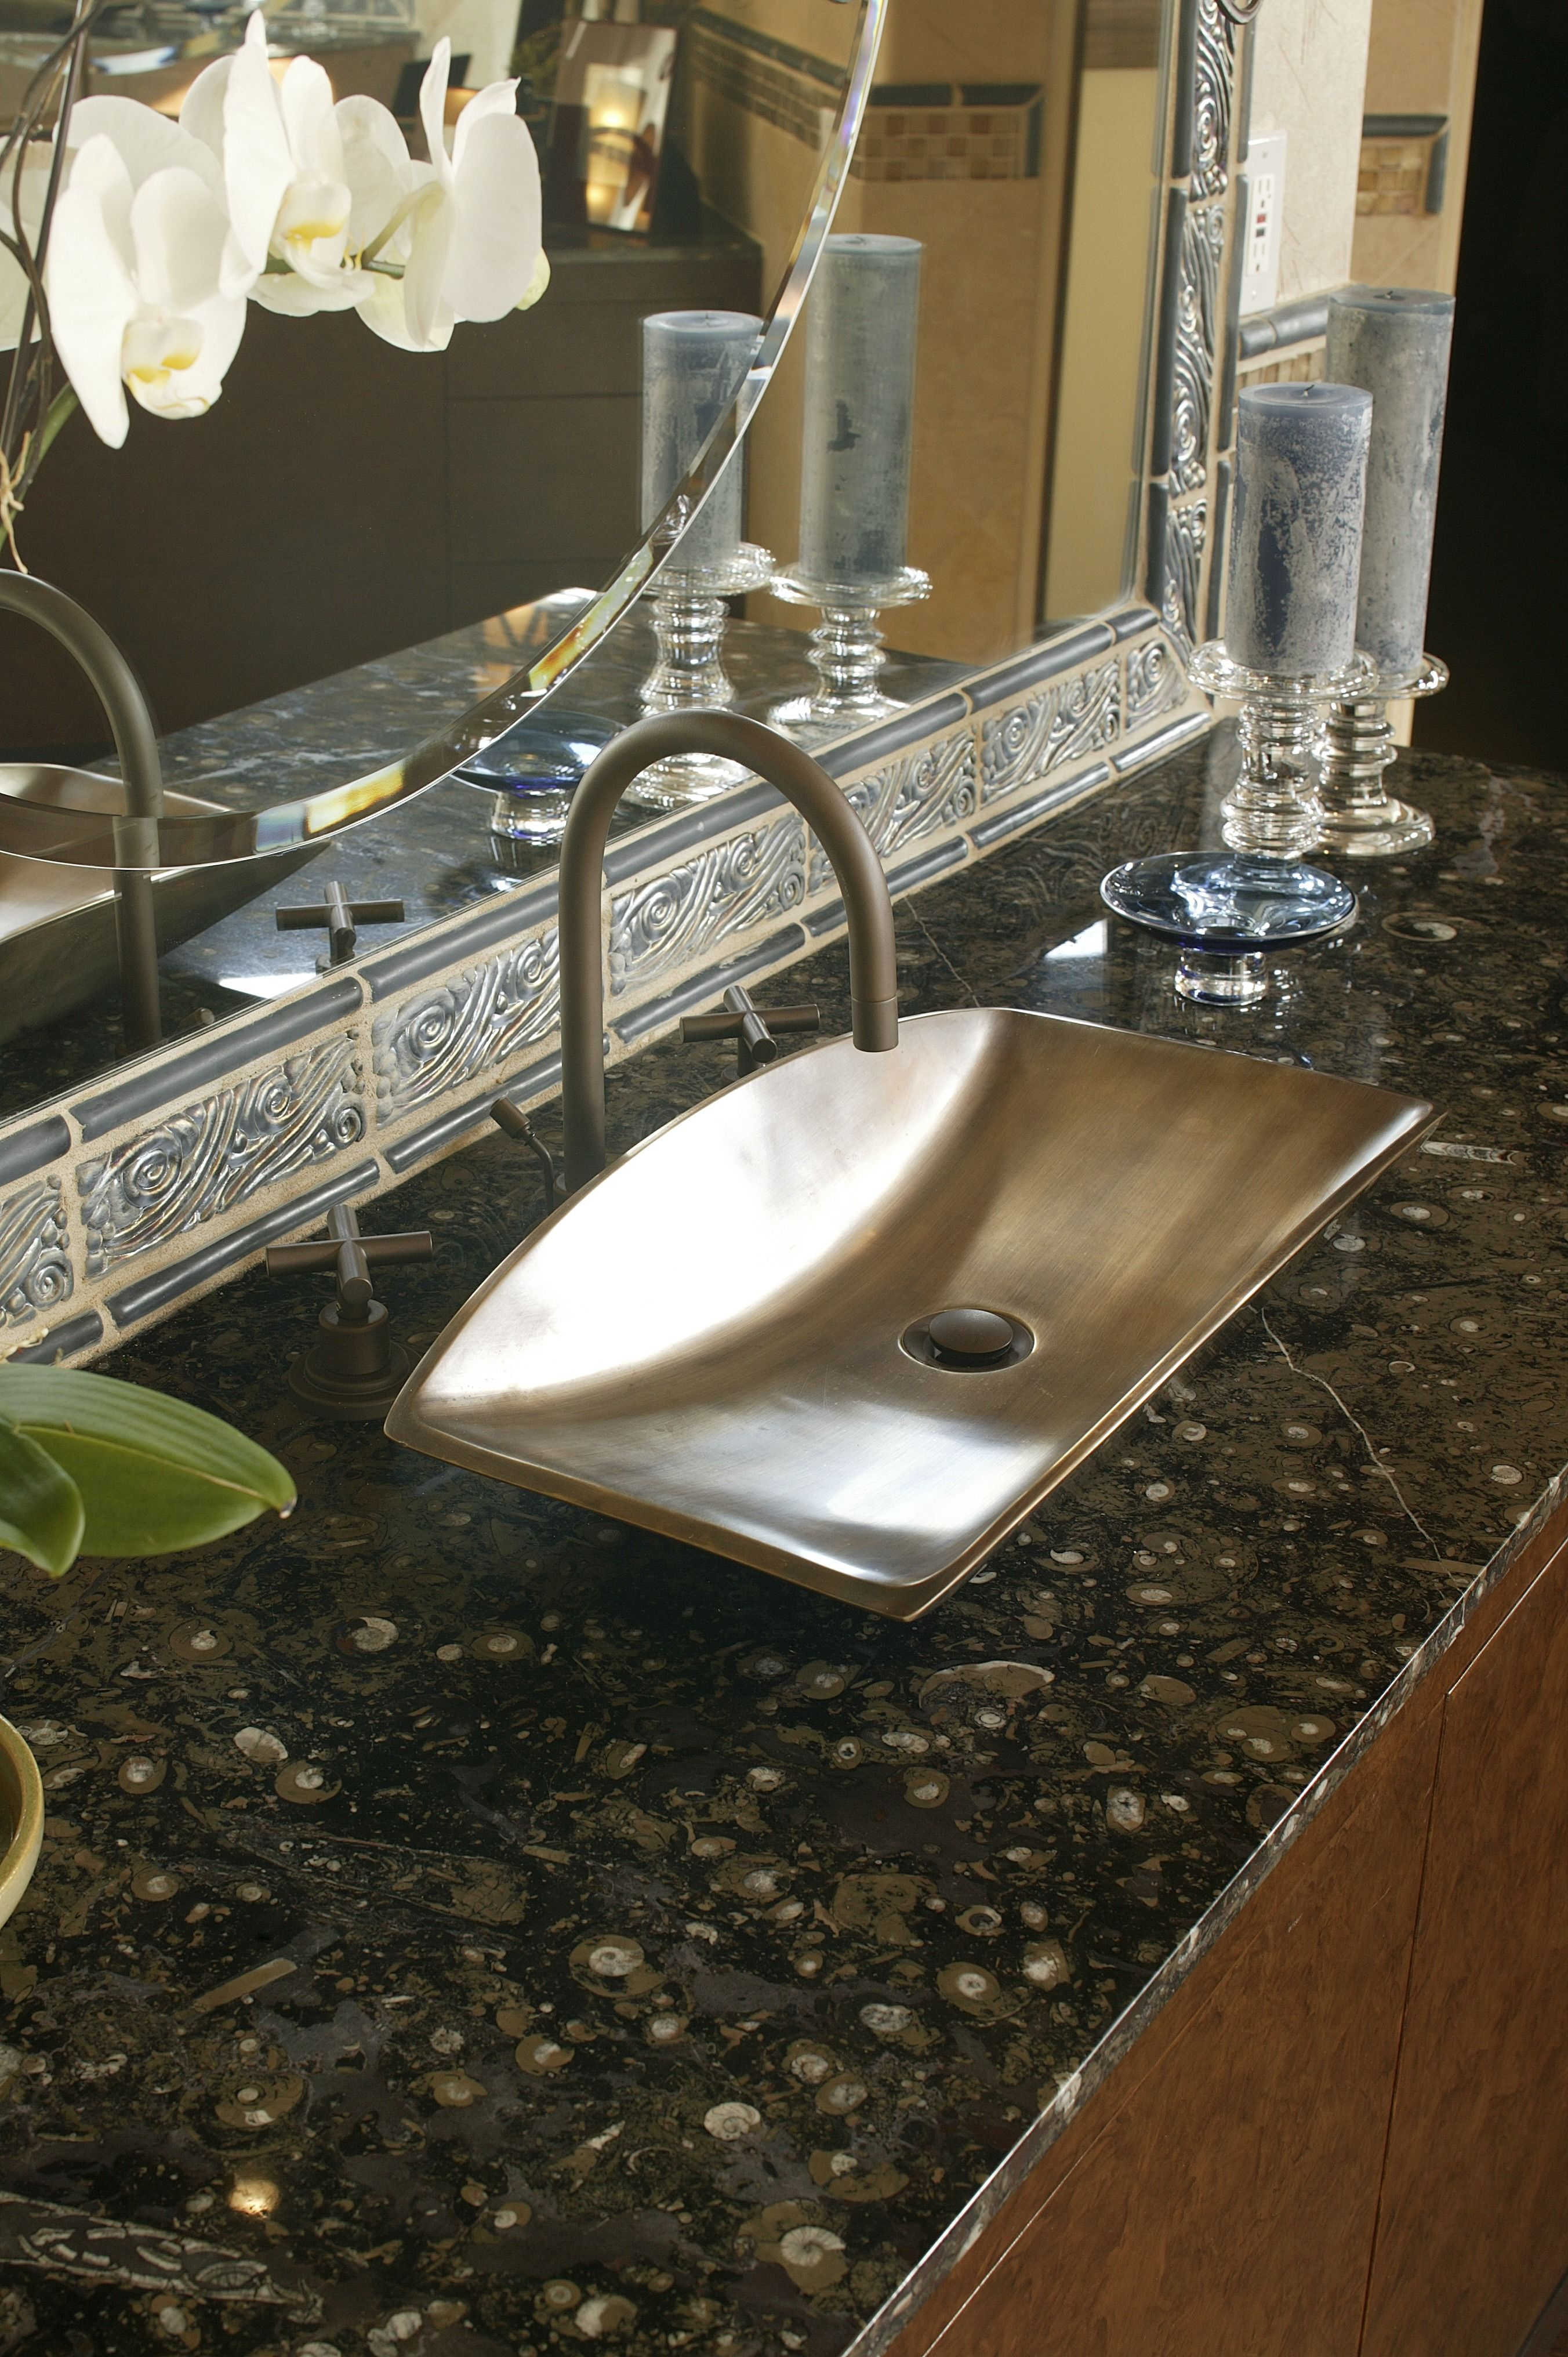 Sink Installation Cost Guide Cost To Install A Kitchen Sink Bathroom Renovation Cost Cost To Redo Bathroom Sink